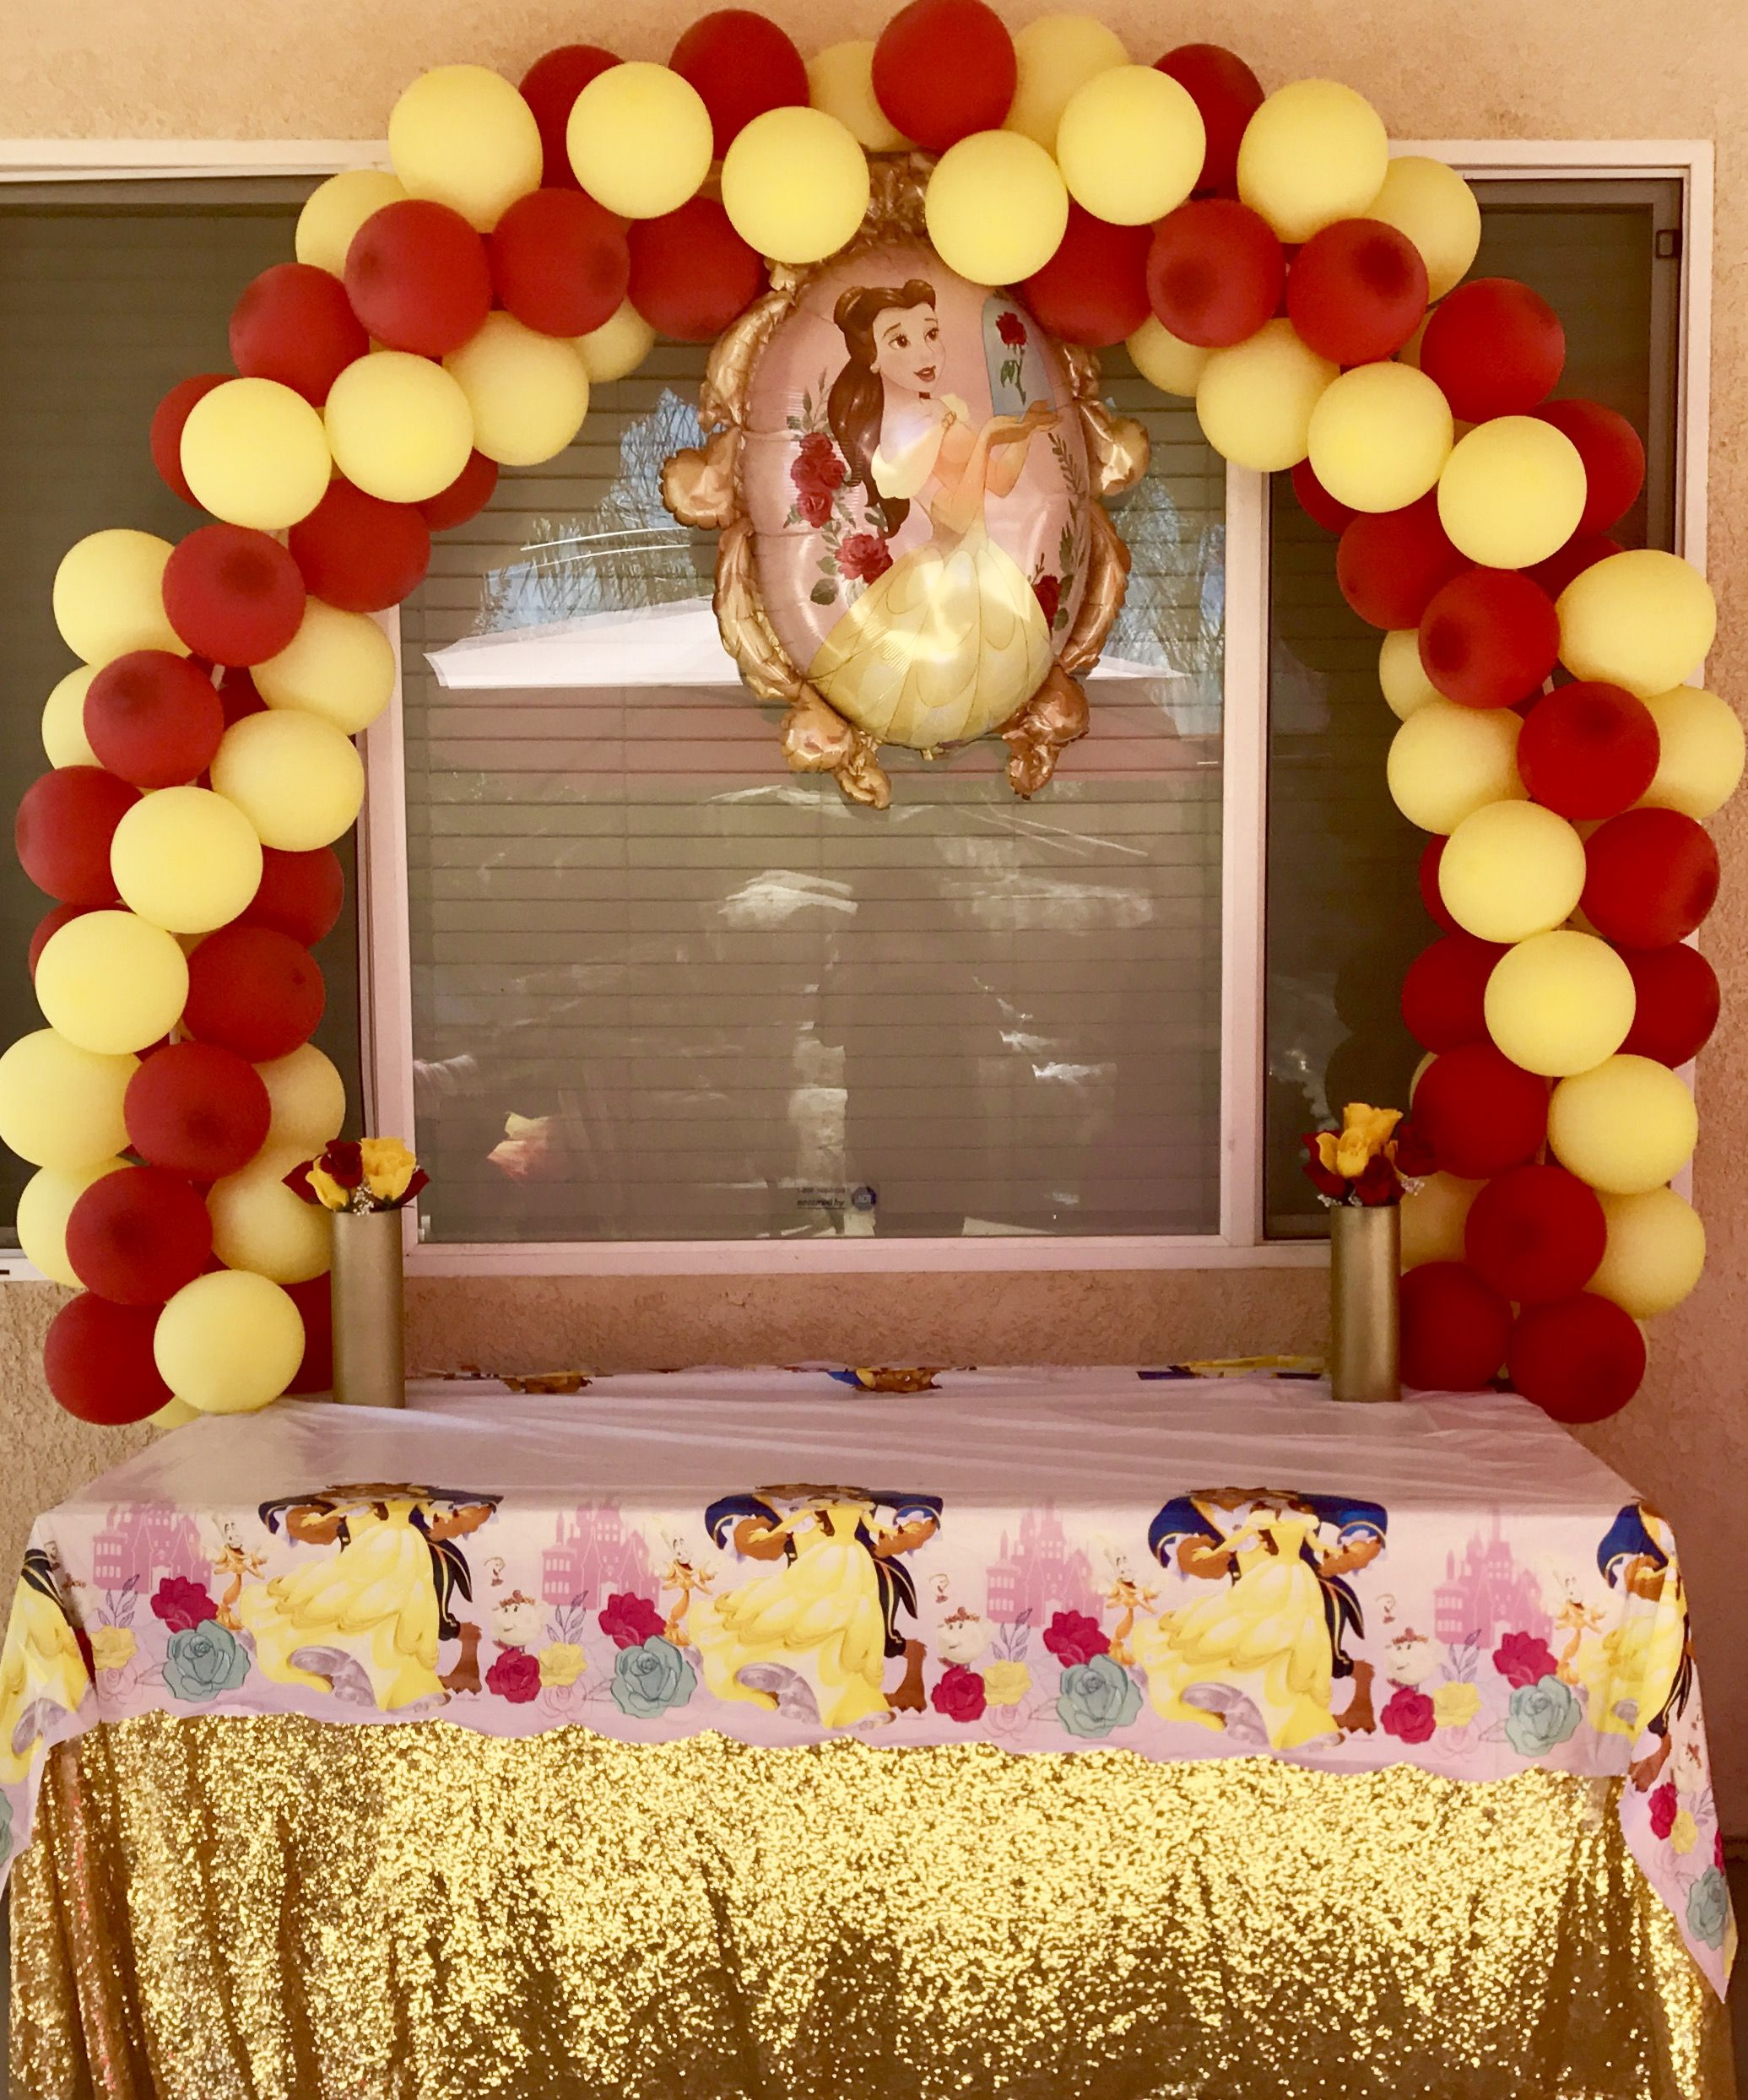 Beauty and The Beast Balloon Arch! Beauty and The Beast